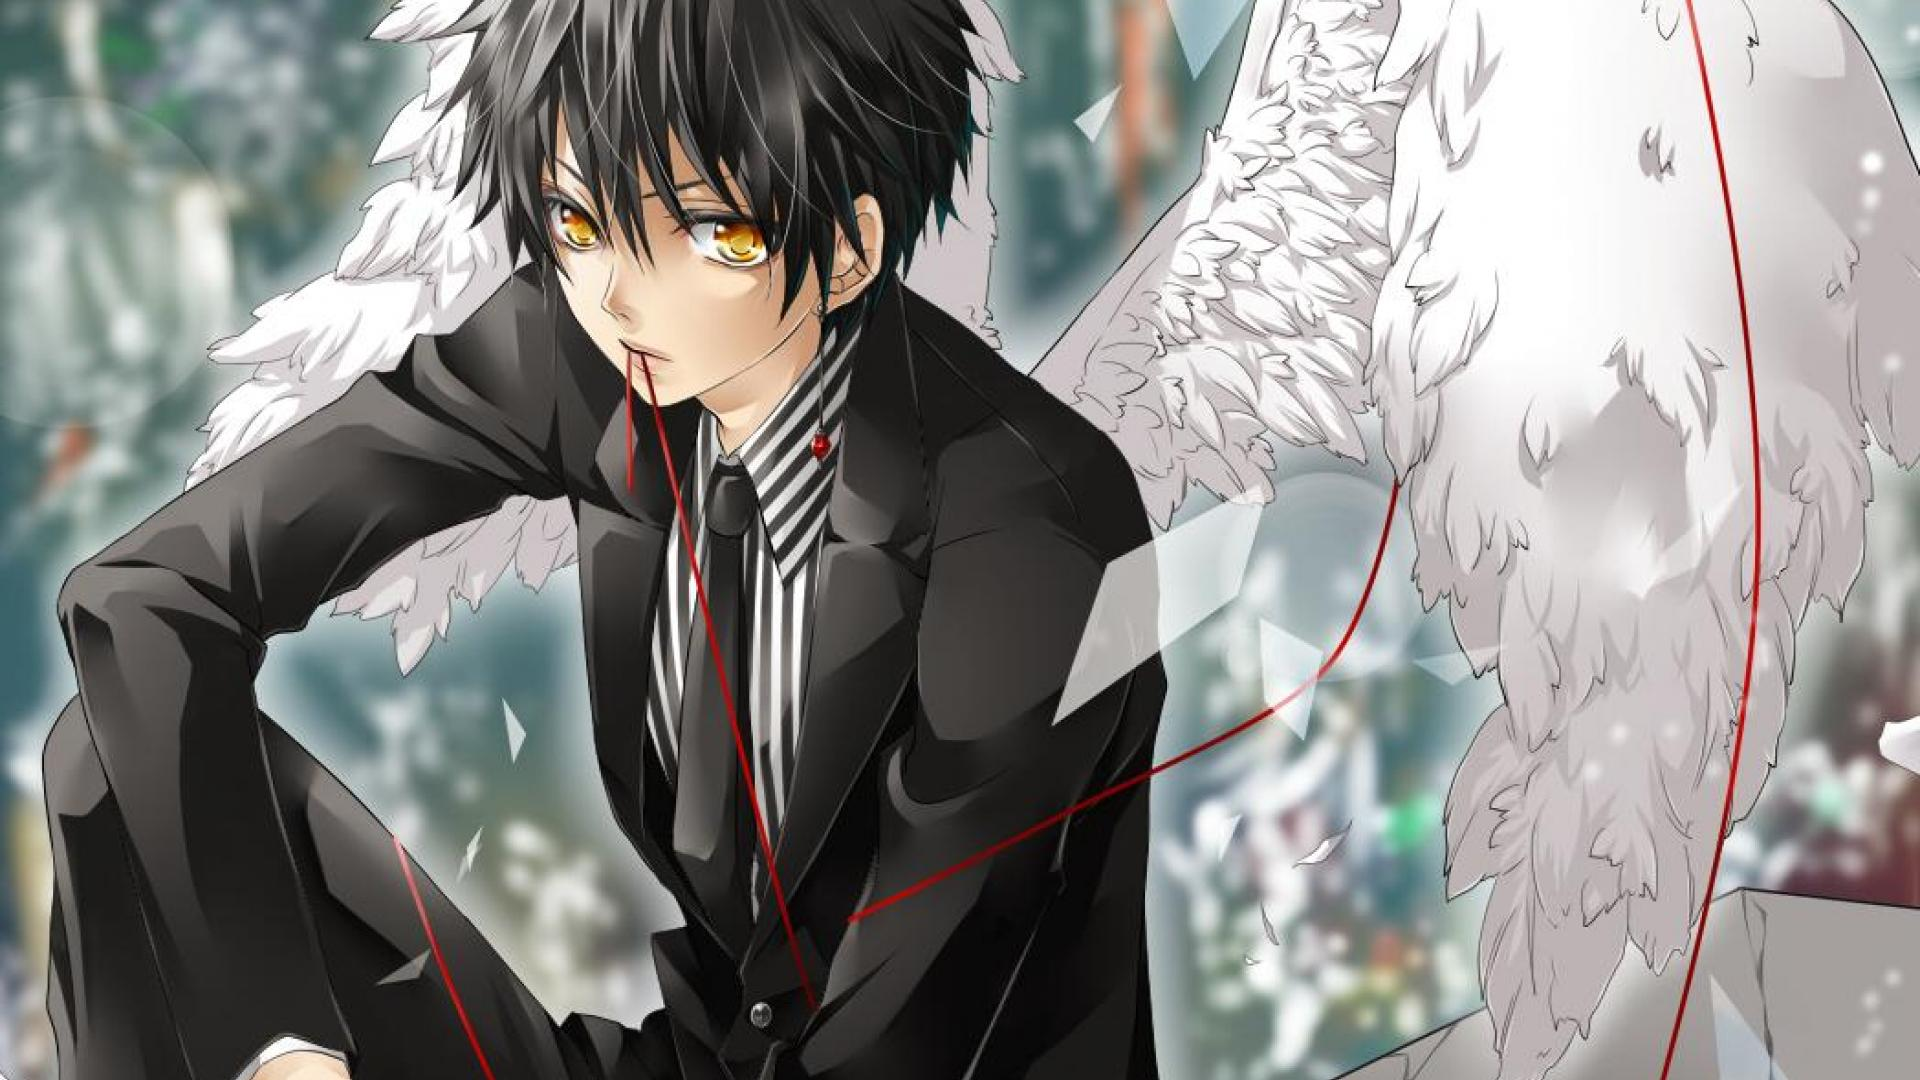 Anime Angel Boy Wallpaper